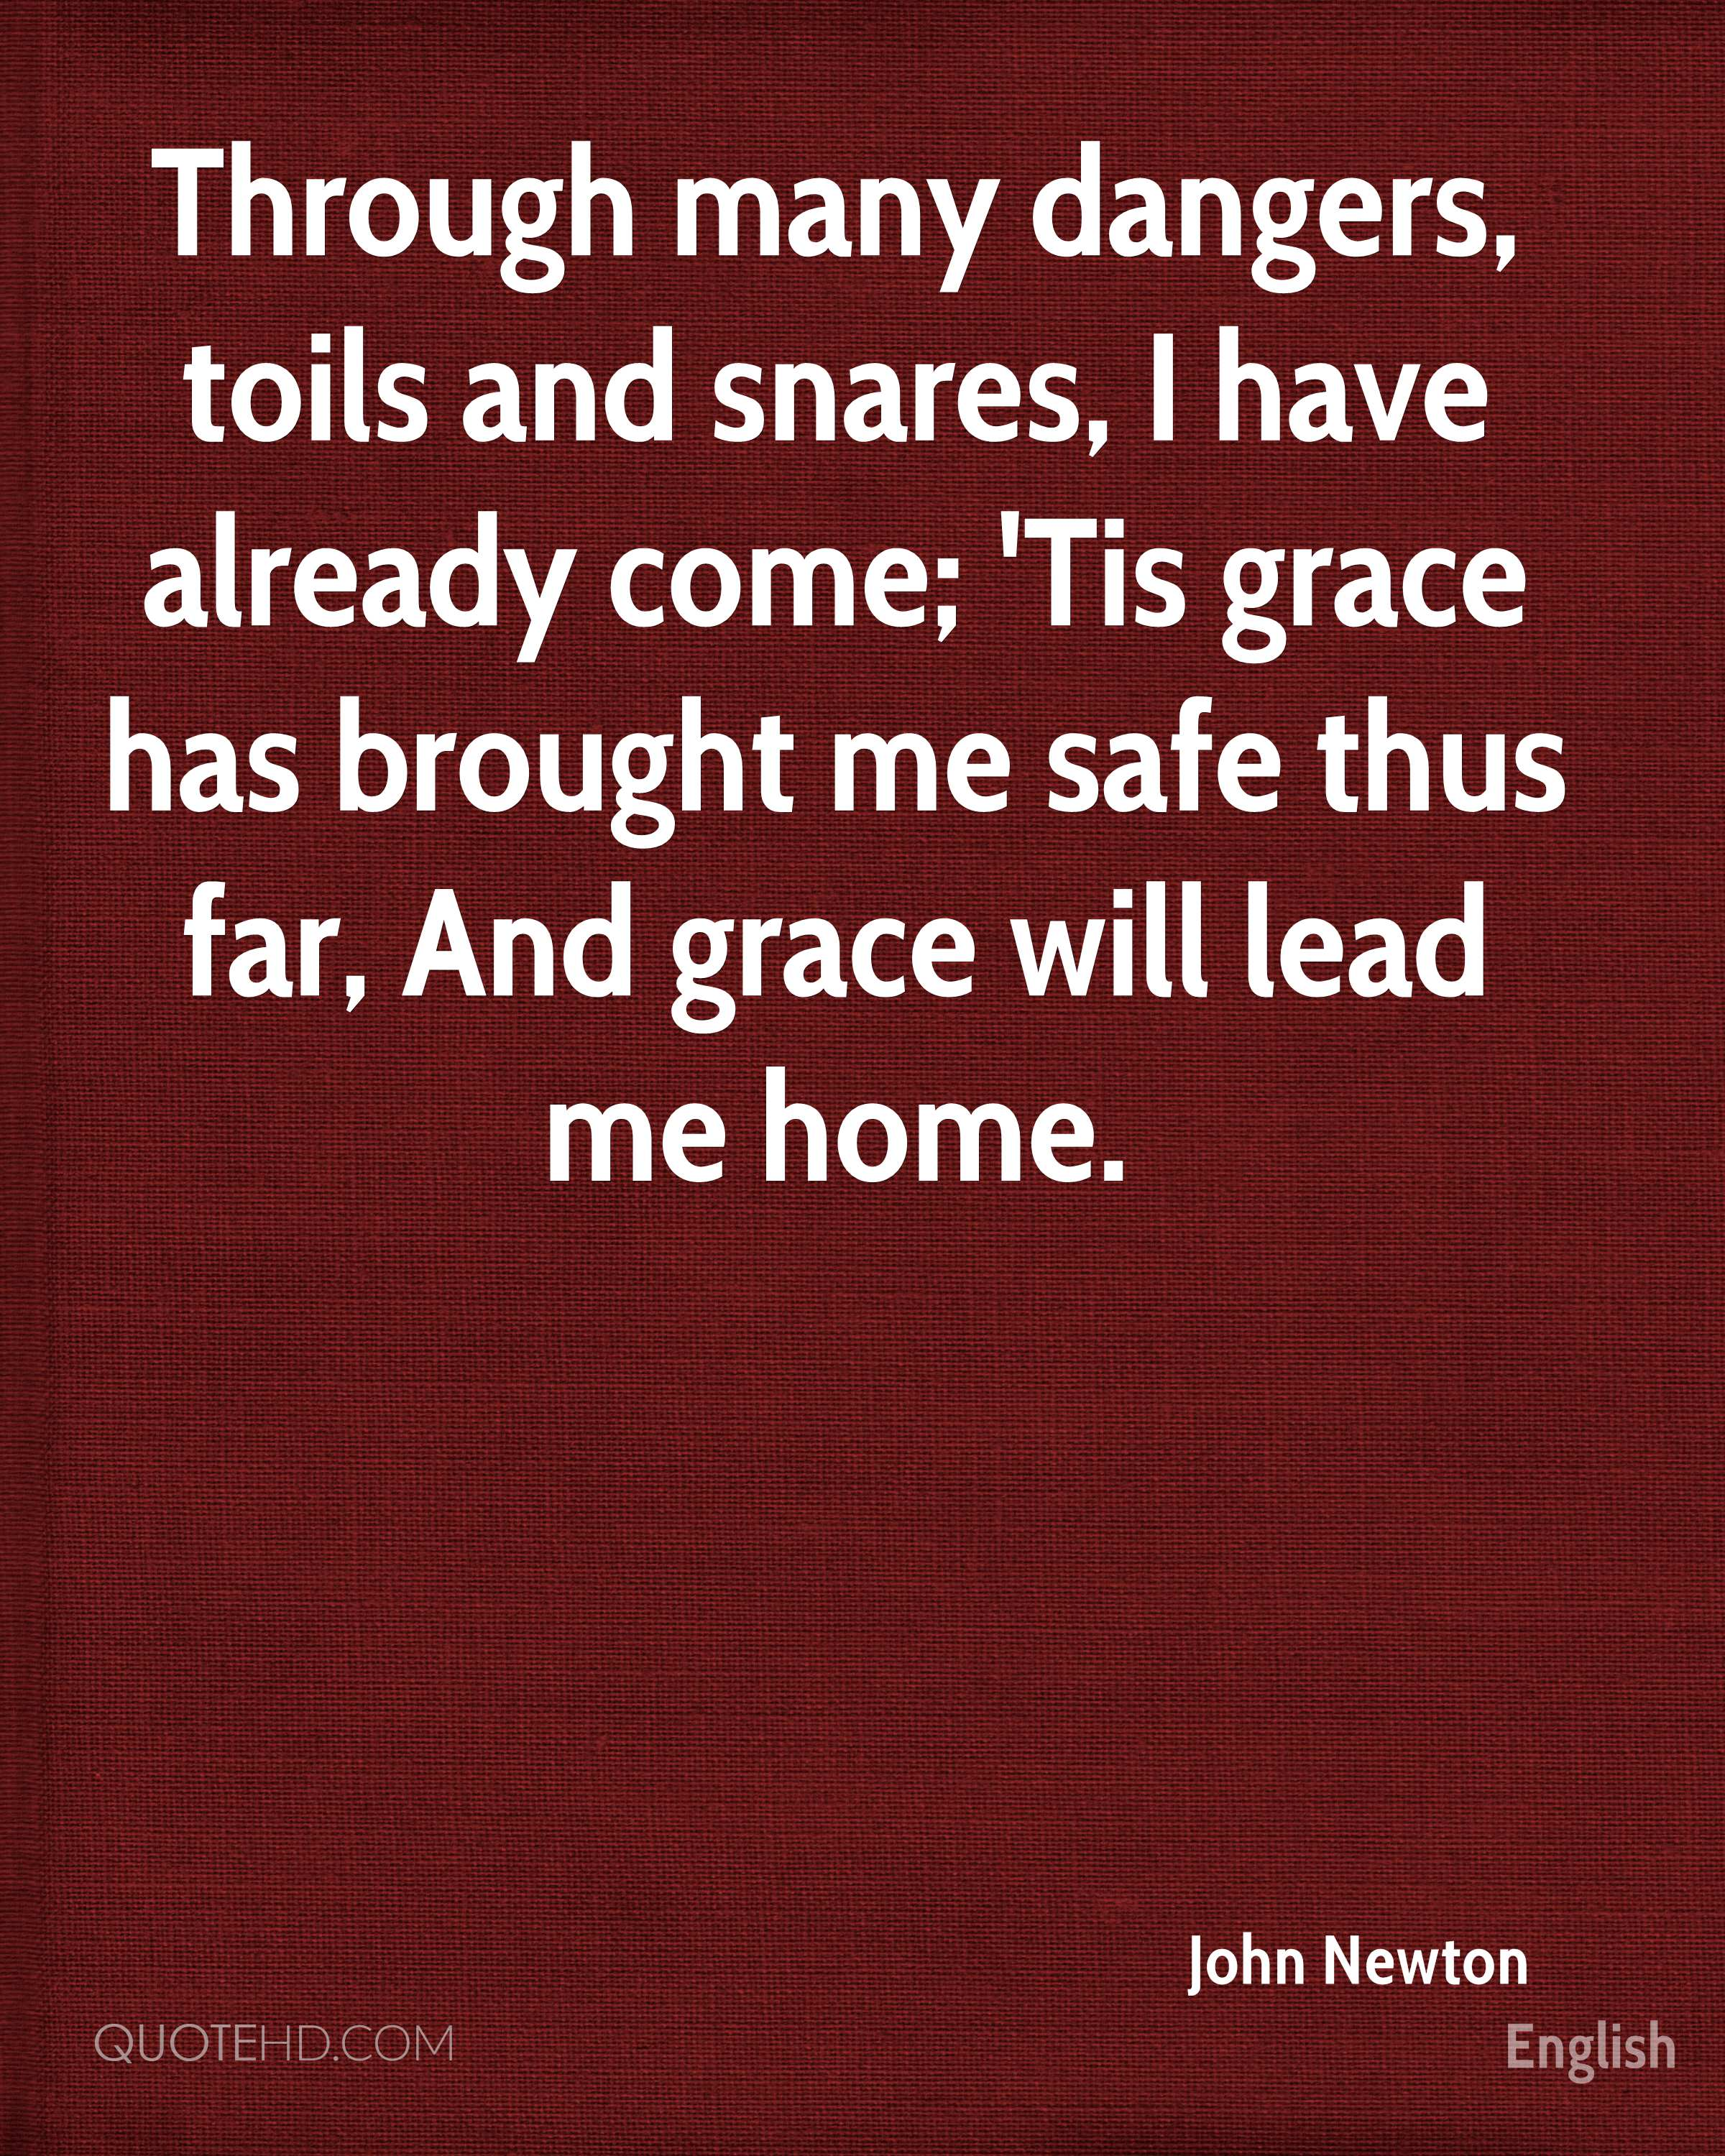 Through many dangers, toils and snares, I have already come; 'Tis grace has brought me safe thus far, And grace will lead me home.